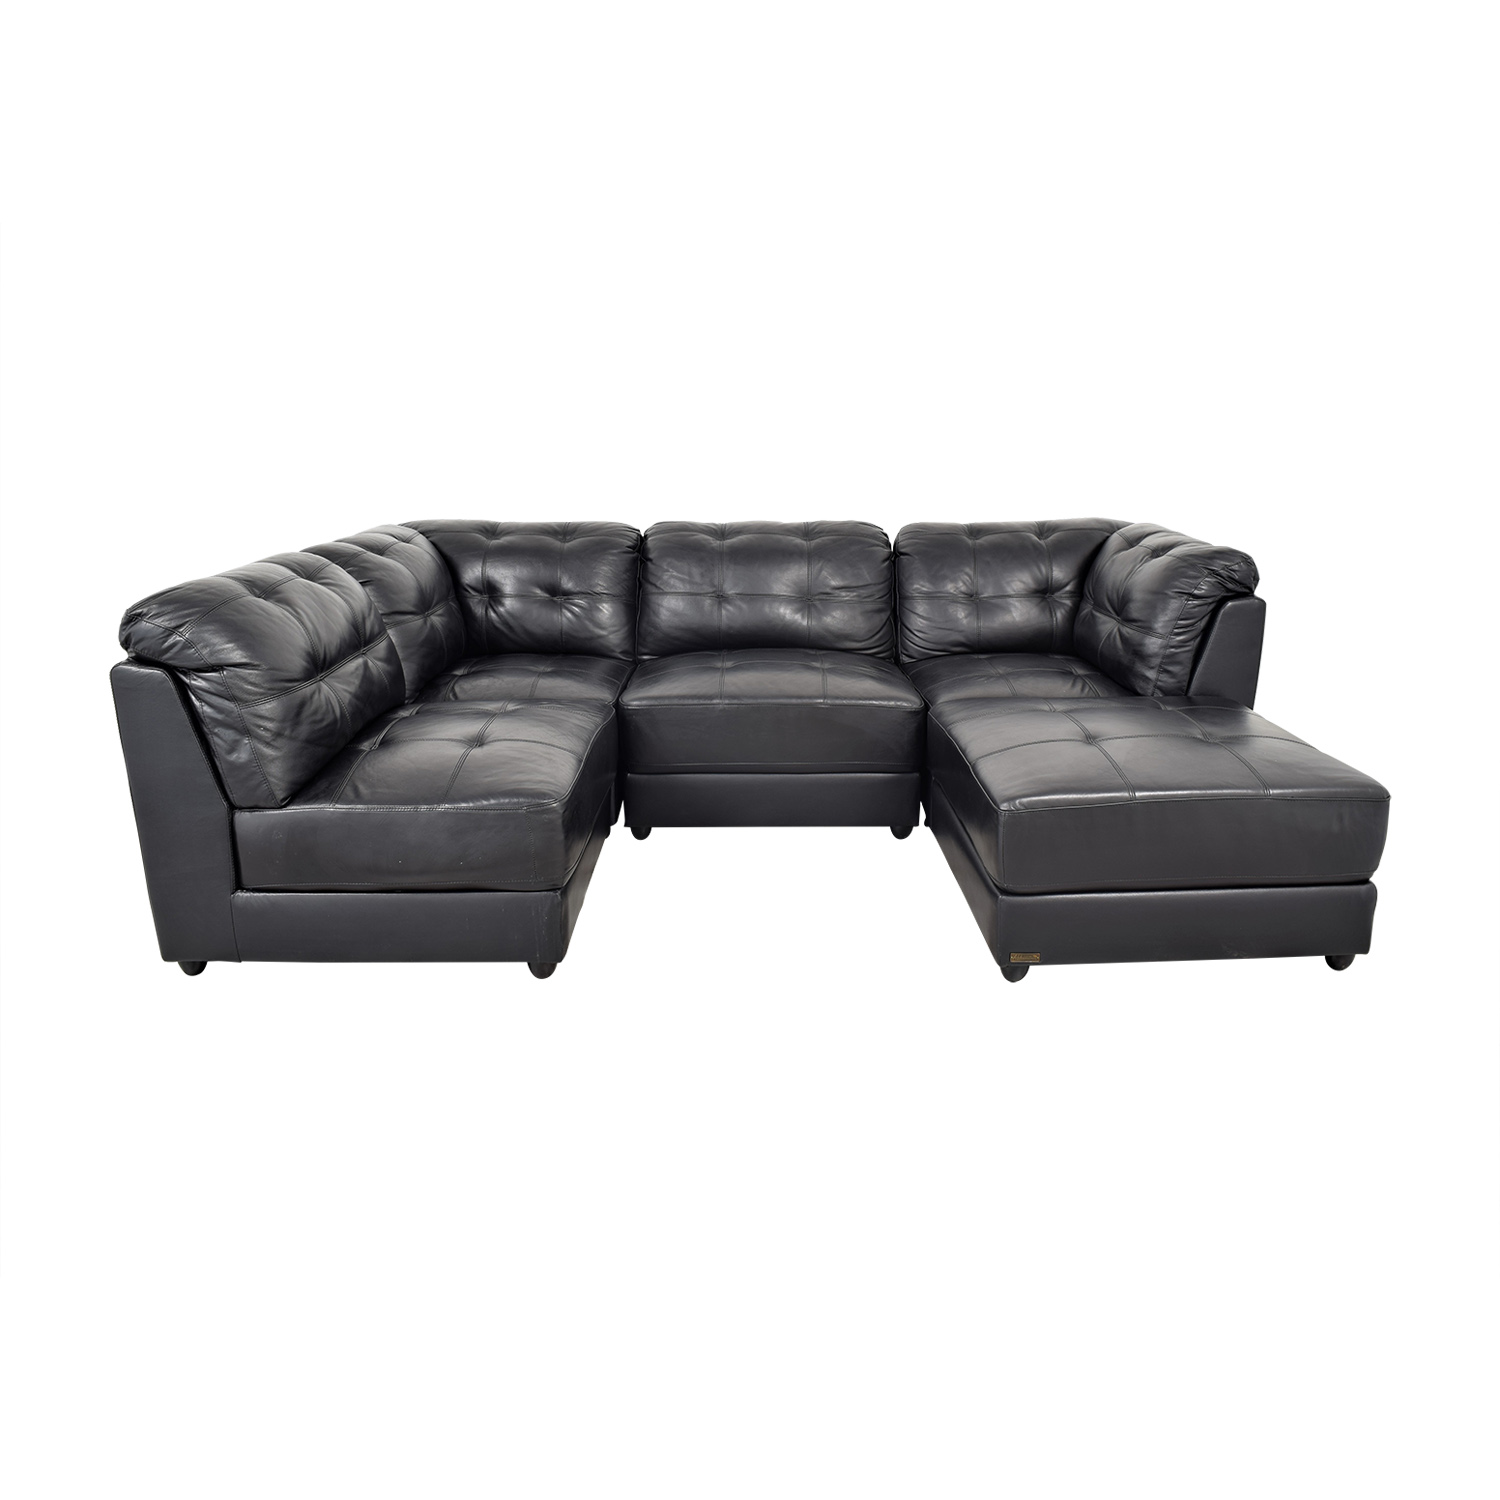 Abbyson Ella 5-Piece Black Modular Leather Sectional with Ottoman sale